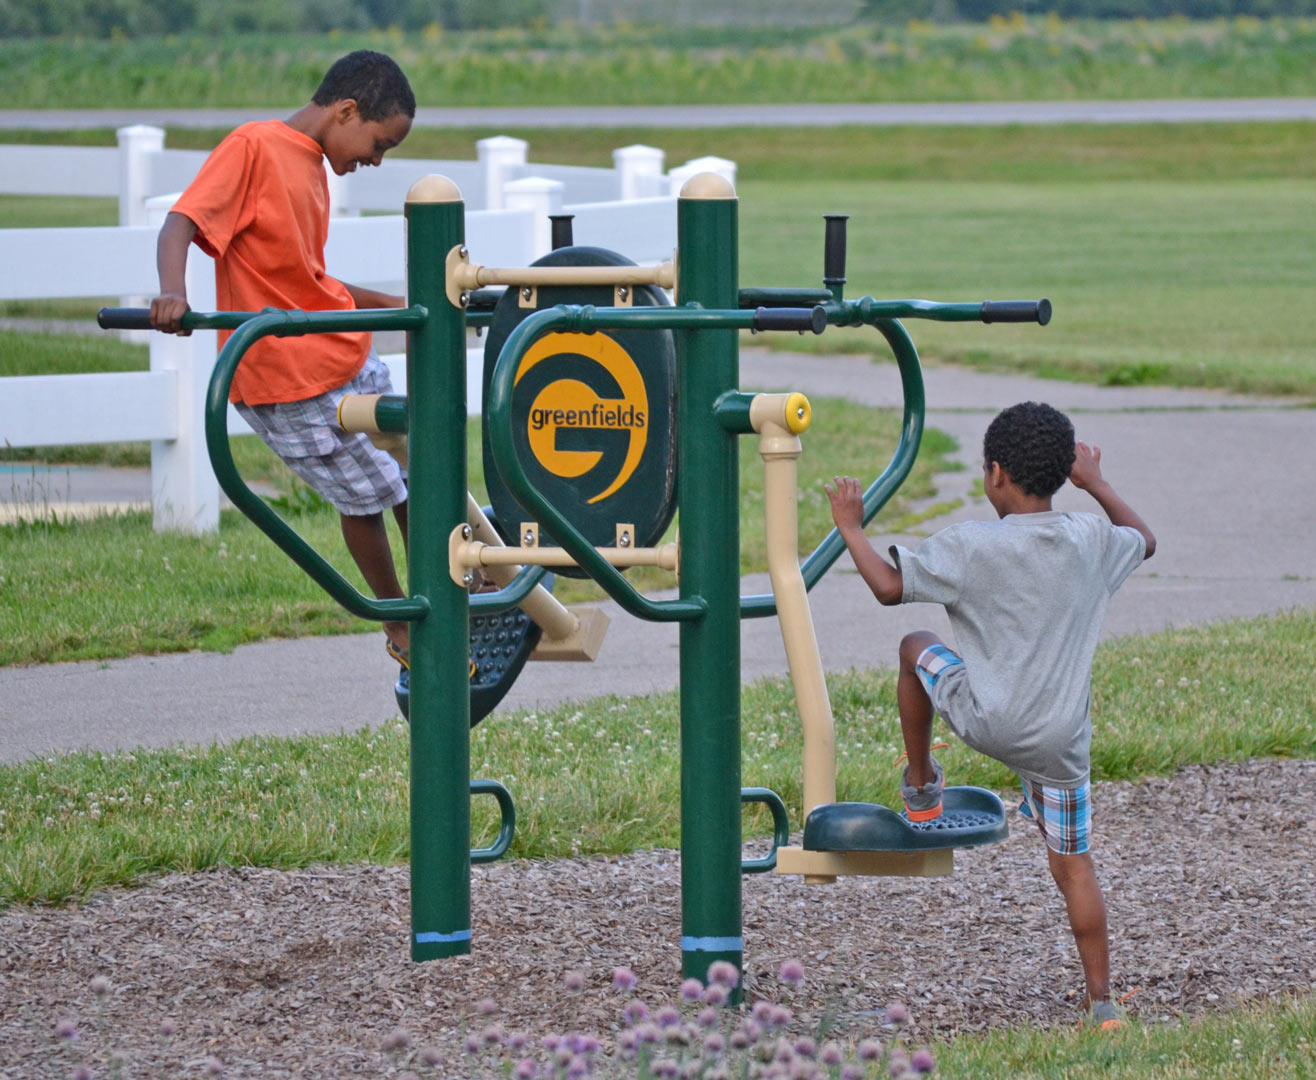 Kids on play equipment at Homestead